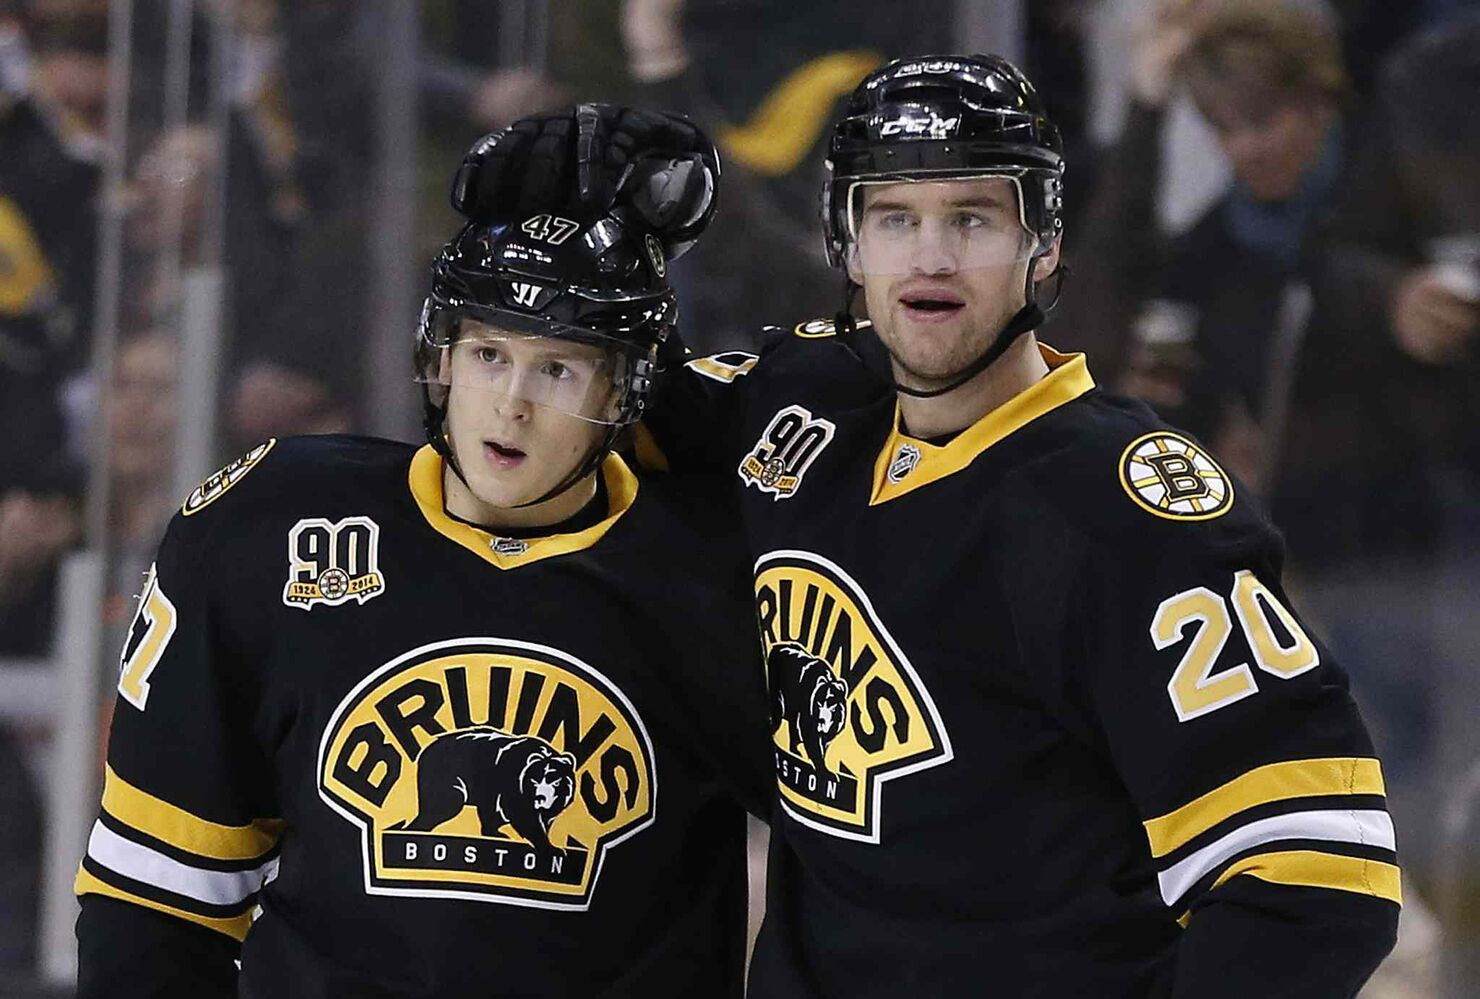 Boston Bruins' Torey Krug, left, celebrates his goal with teammate Daniel Paille (20) during the second period against the Winnipeg Jets Saturday. (Michael Dwyer / The Associated Press)